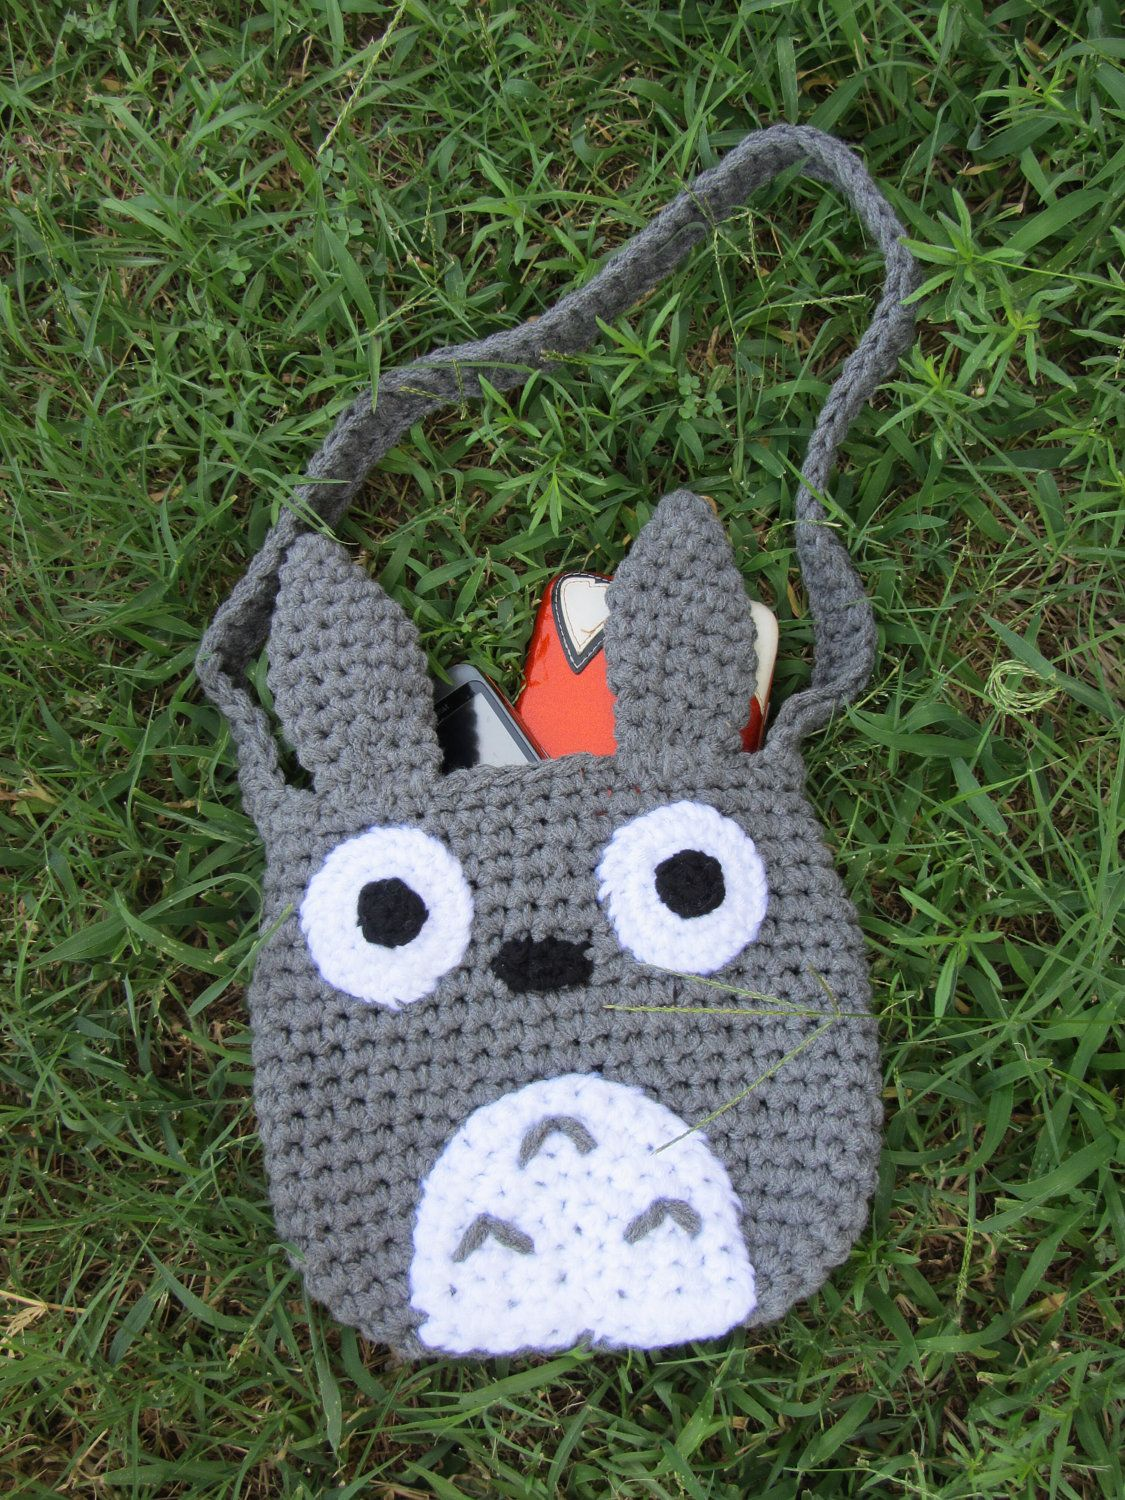 Crochet totoro tote 4000 via etsy 12 in 12 november no pattern just a photo to work from looks easy to replicate and fast since it is chrocheted in chunky yarn or similar tarn bankloansurffo Images